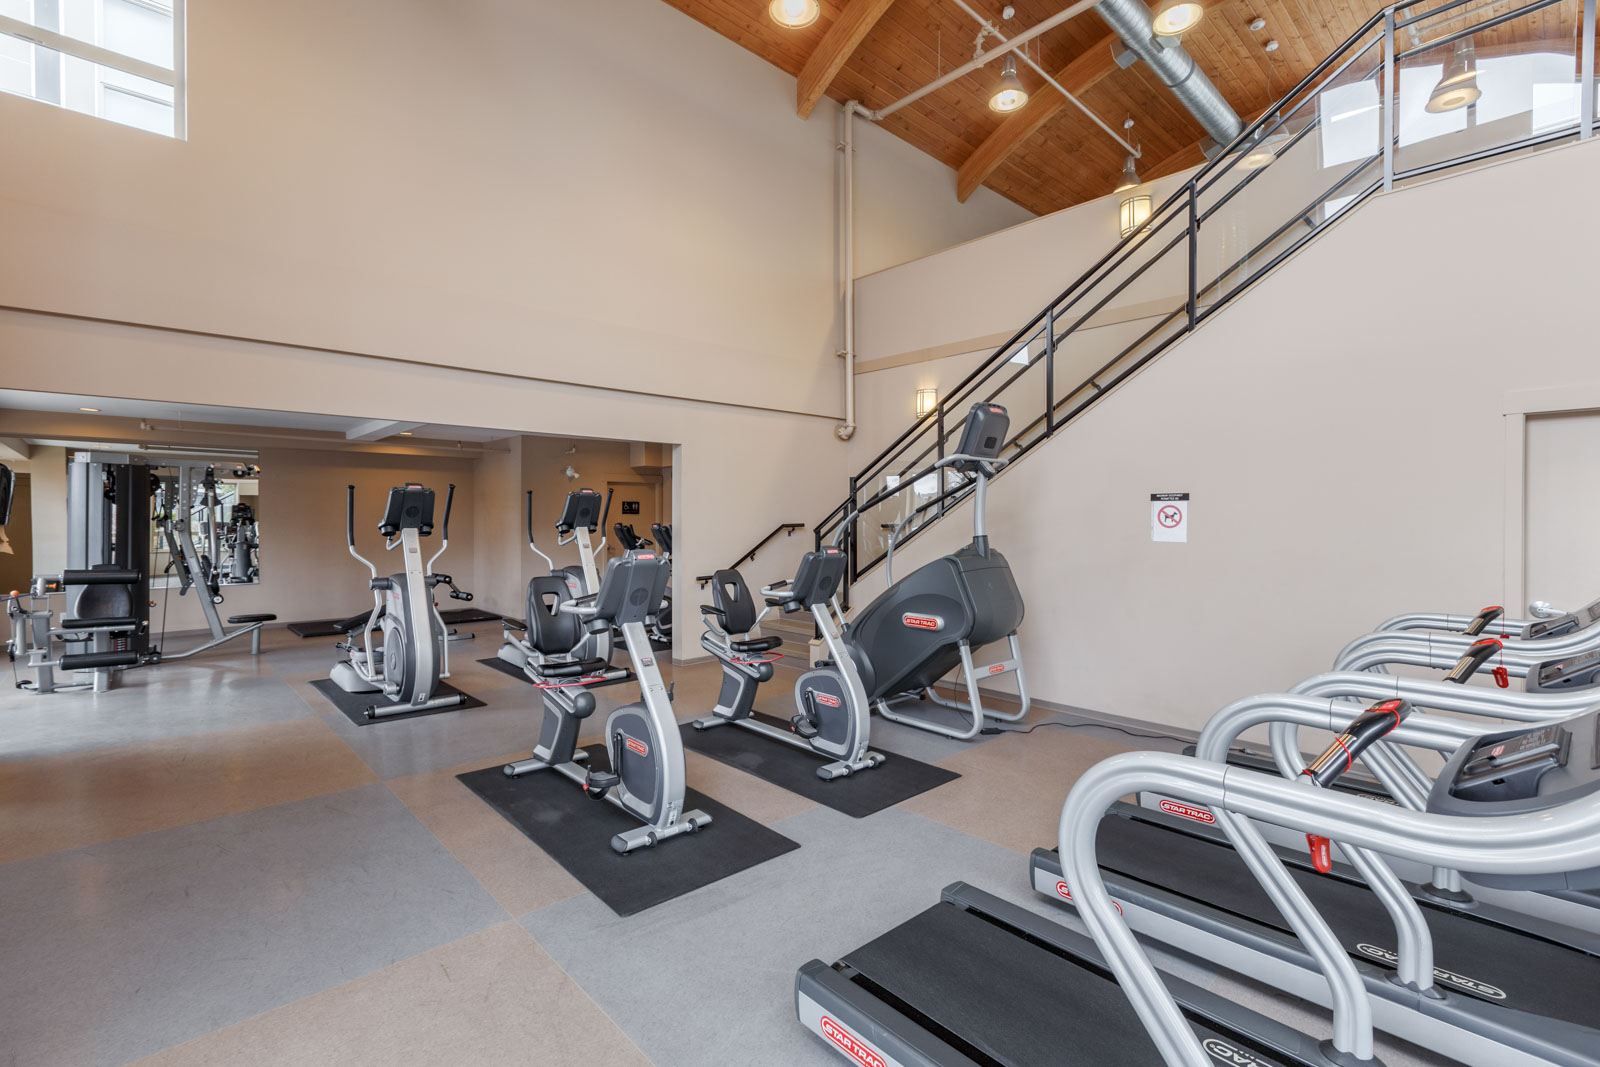 treadmills in gym facilities of remy condo building in richmond with rental properties managed by birds nest properties